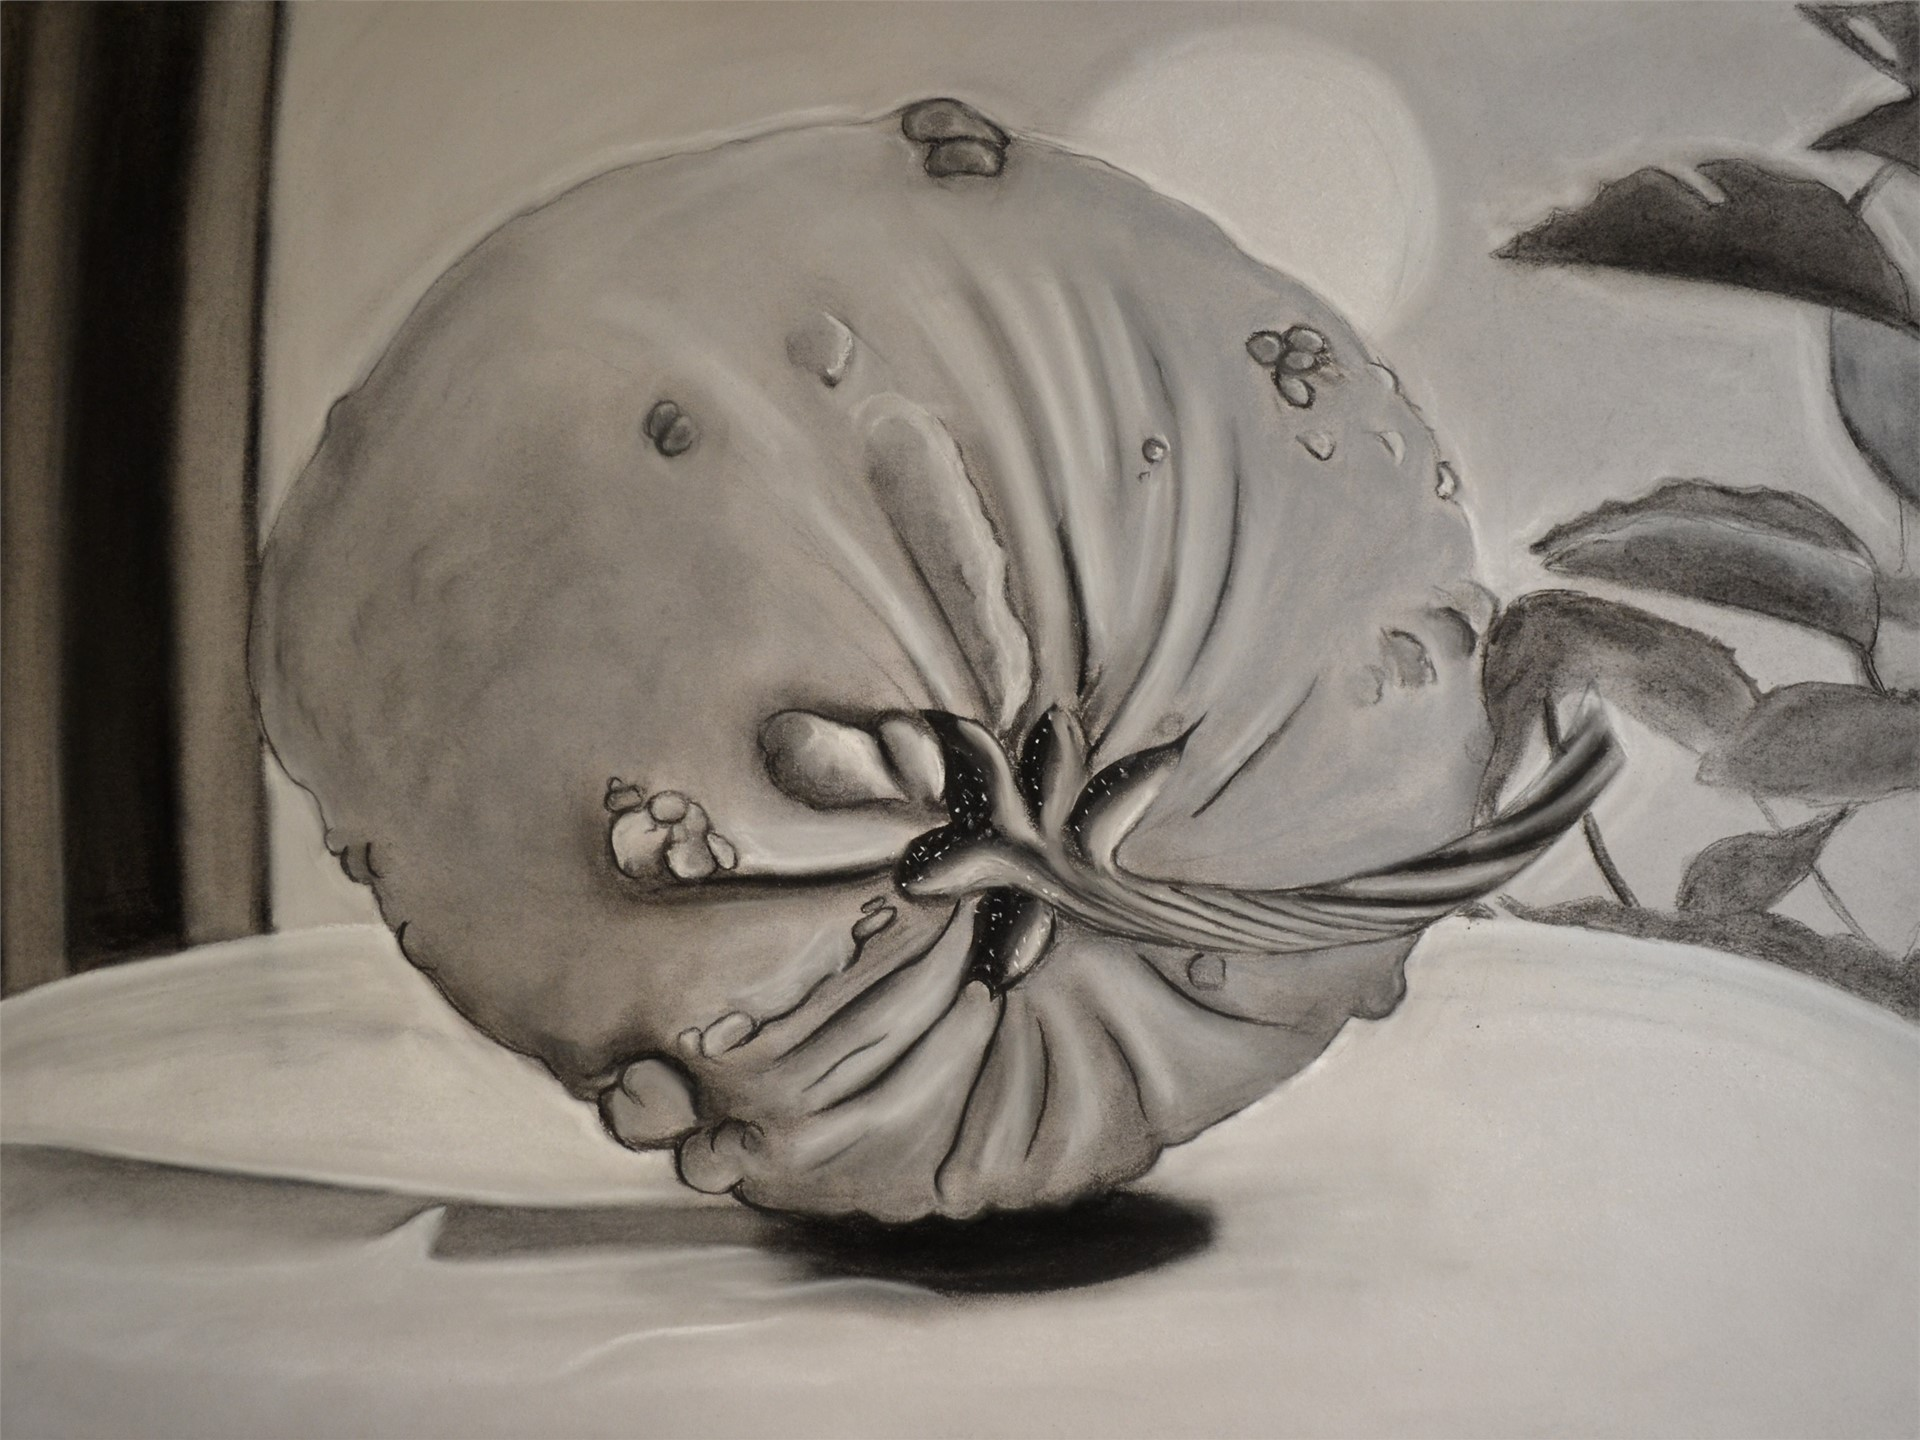 Courtney Smith, Pumpkin, charcoal on gray bogus, 18 x 24, 2015